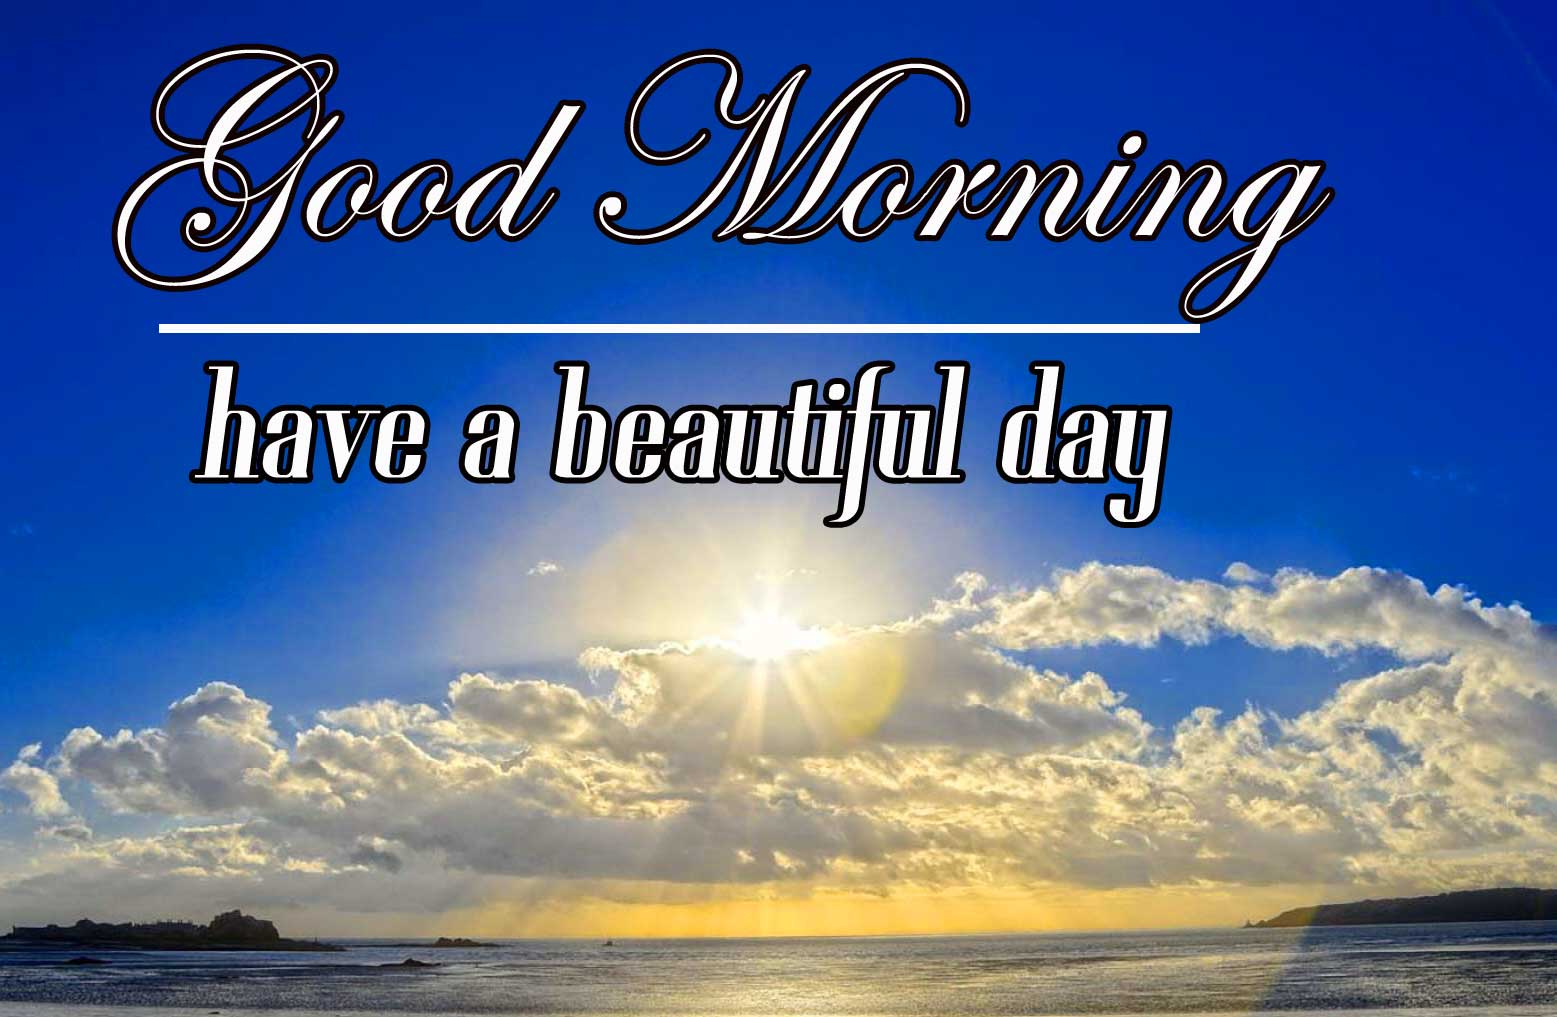 Sunshine Good Morning Wishes Images Pics Wallpaper Download